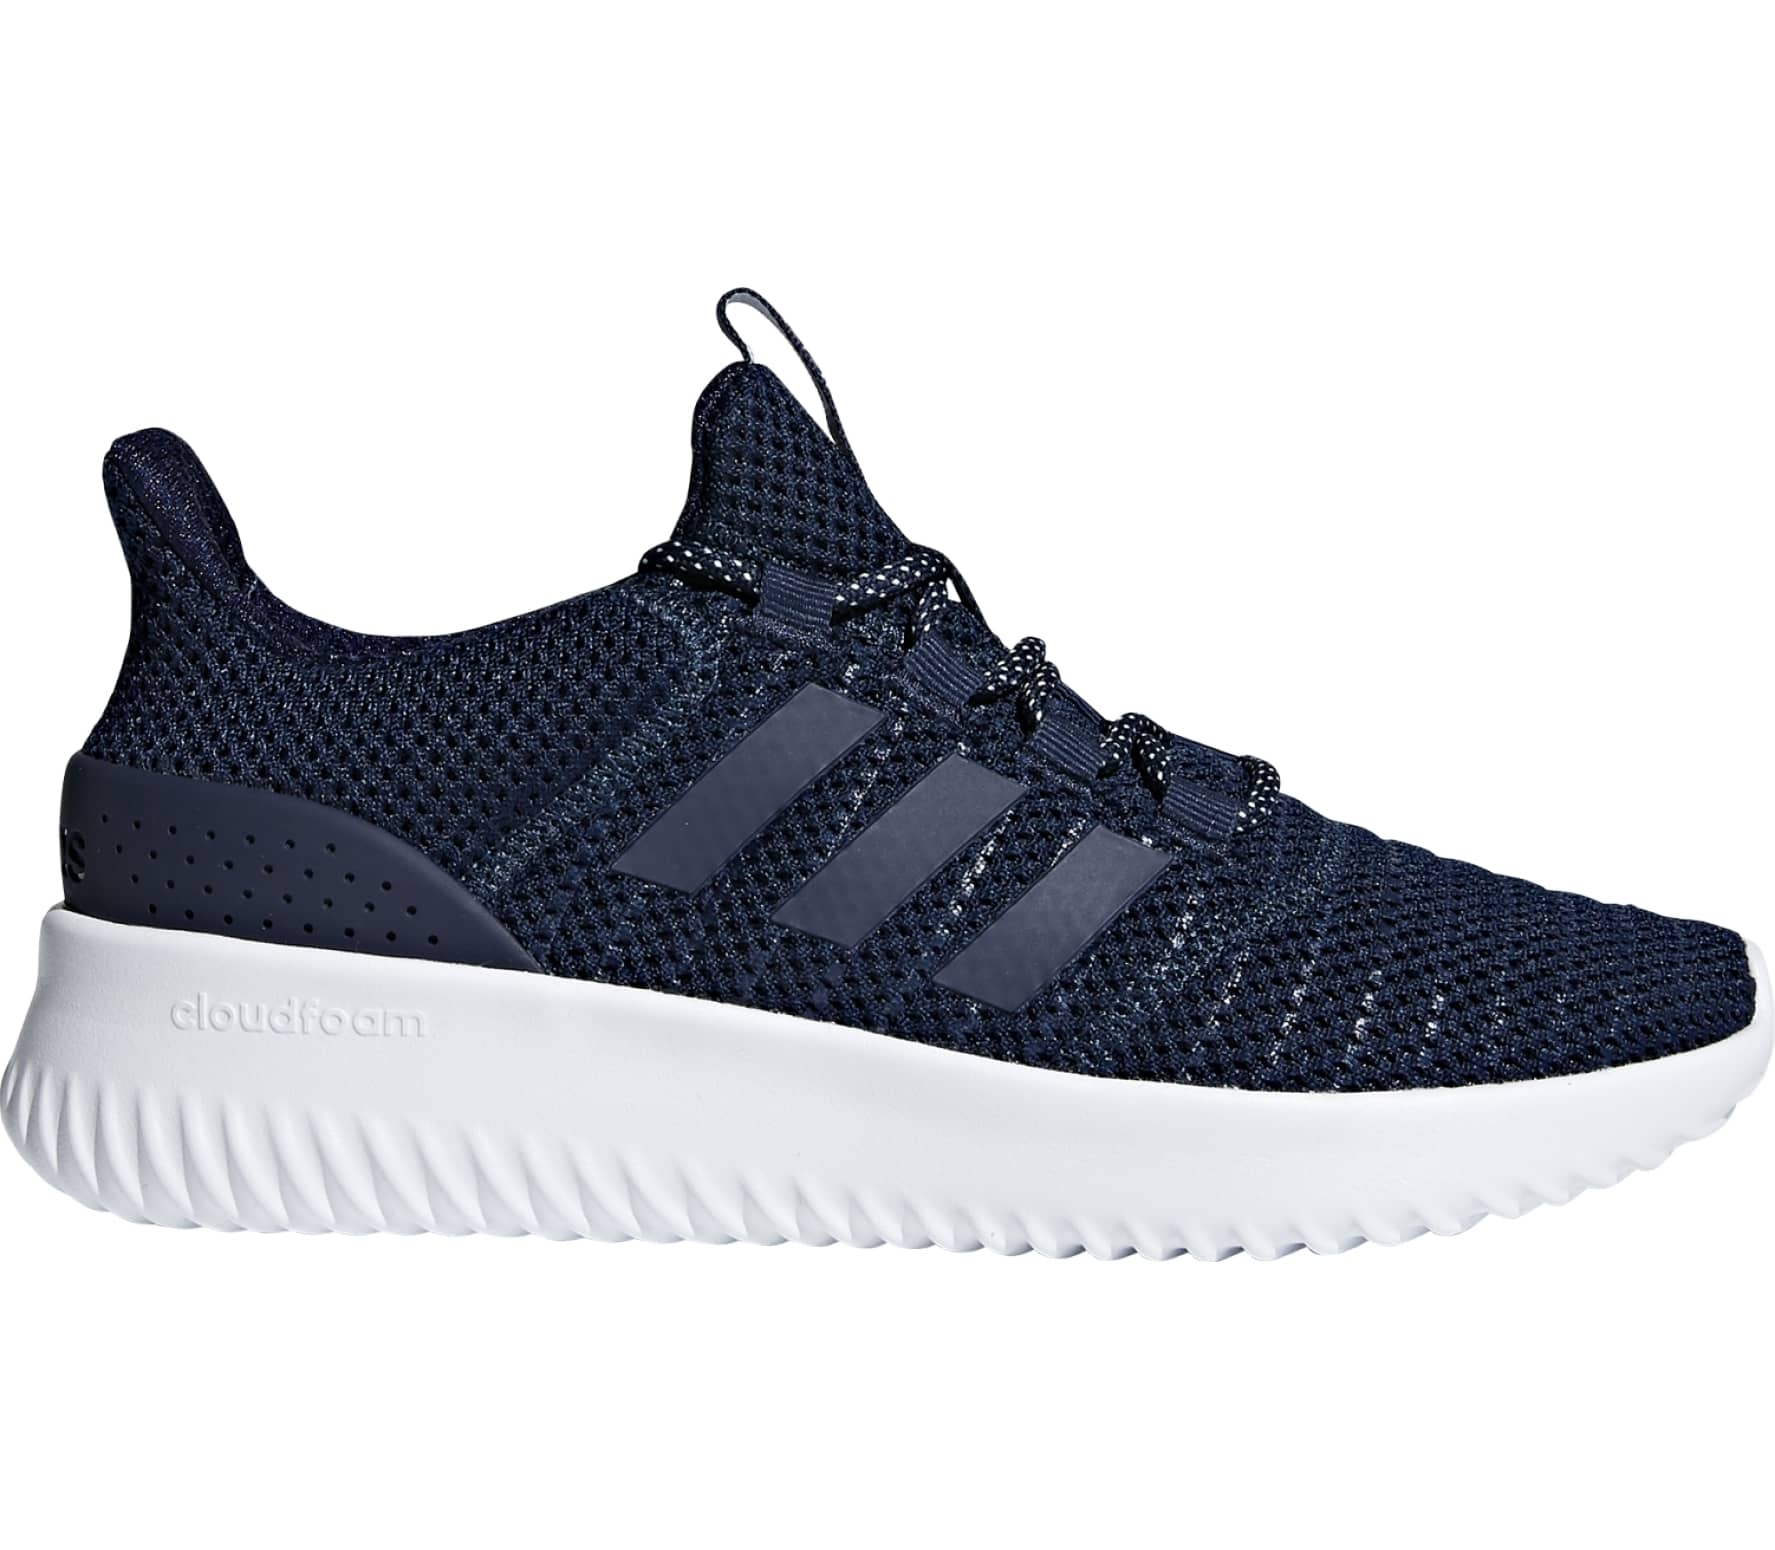 official photos 5c6d5 e1177 Adidas - Cloudfoam Ultimate zapatillas de running para mujer (azul oscuro)